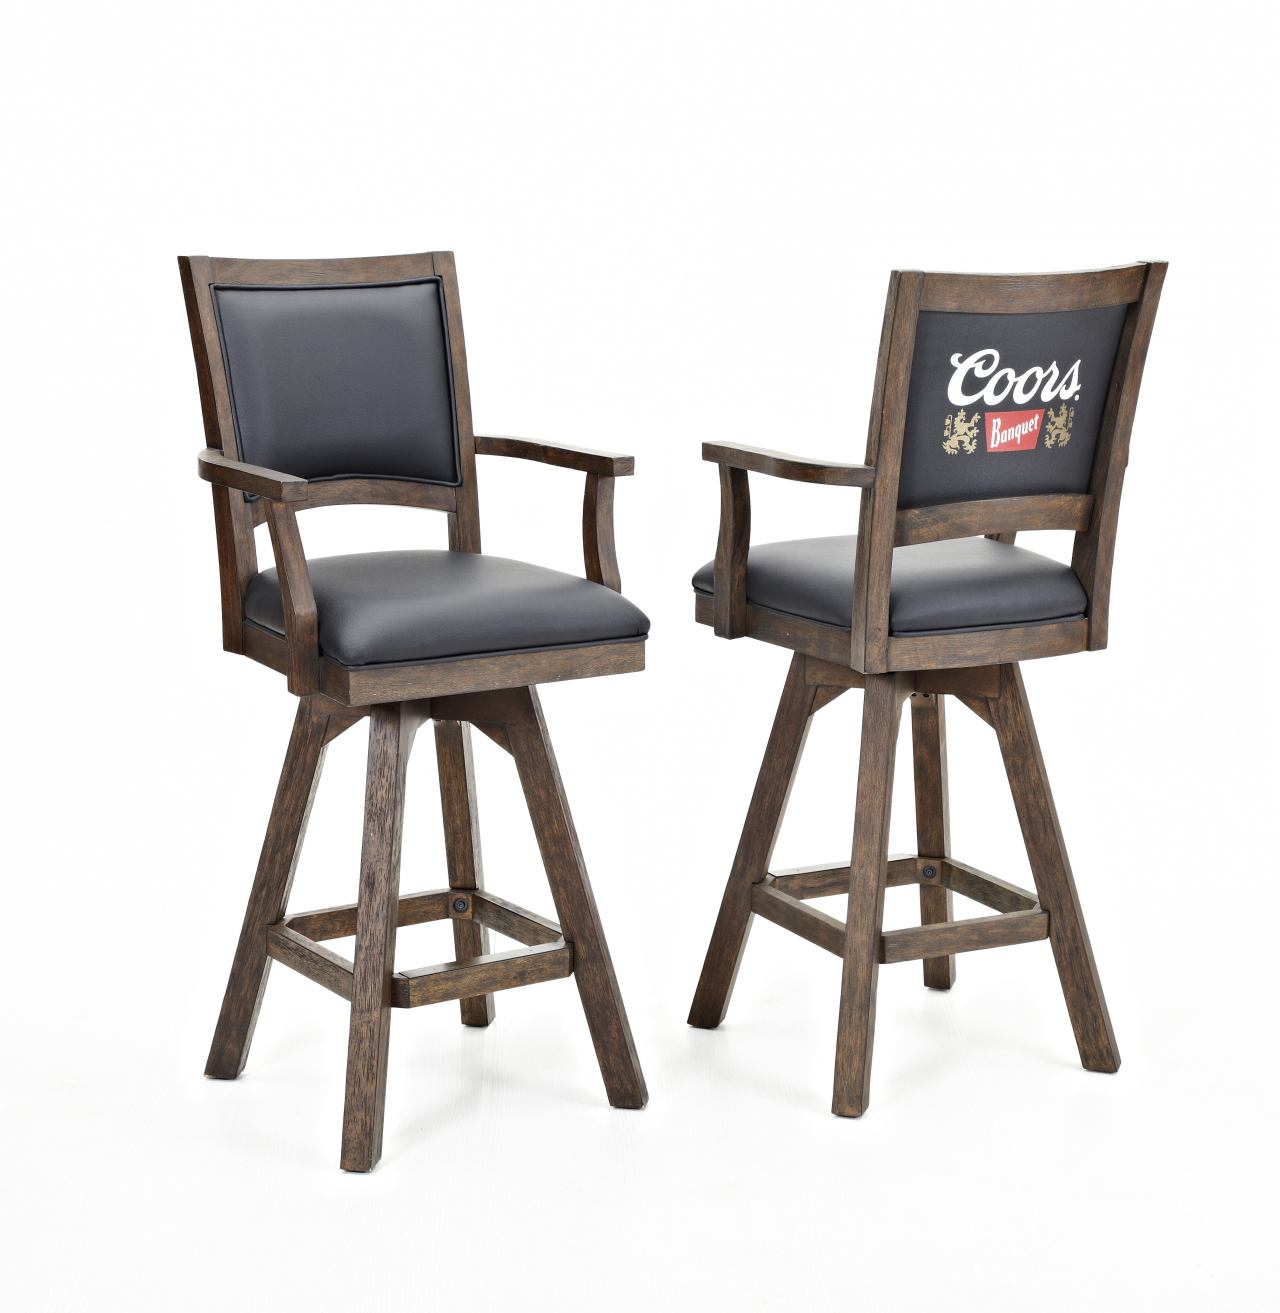 ECI Furniture Coors Banquet Barstool with Arm in Antique Walnut (Set of 2)